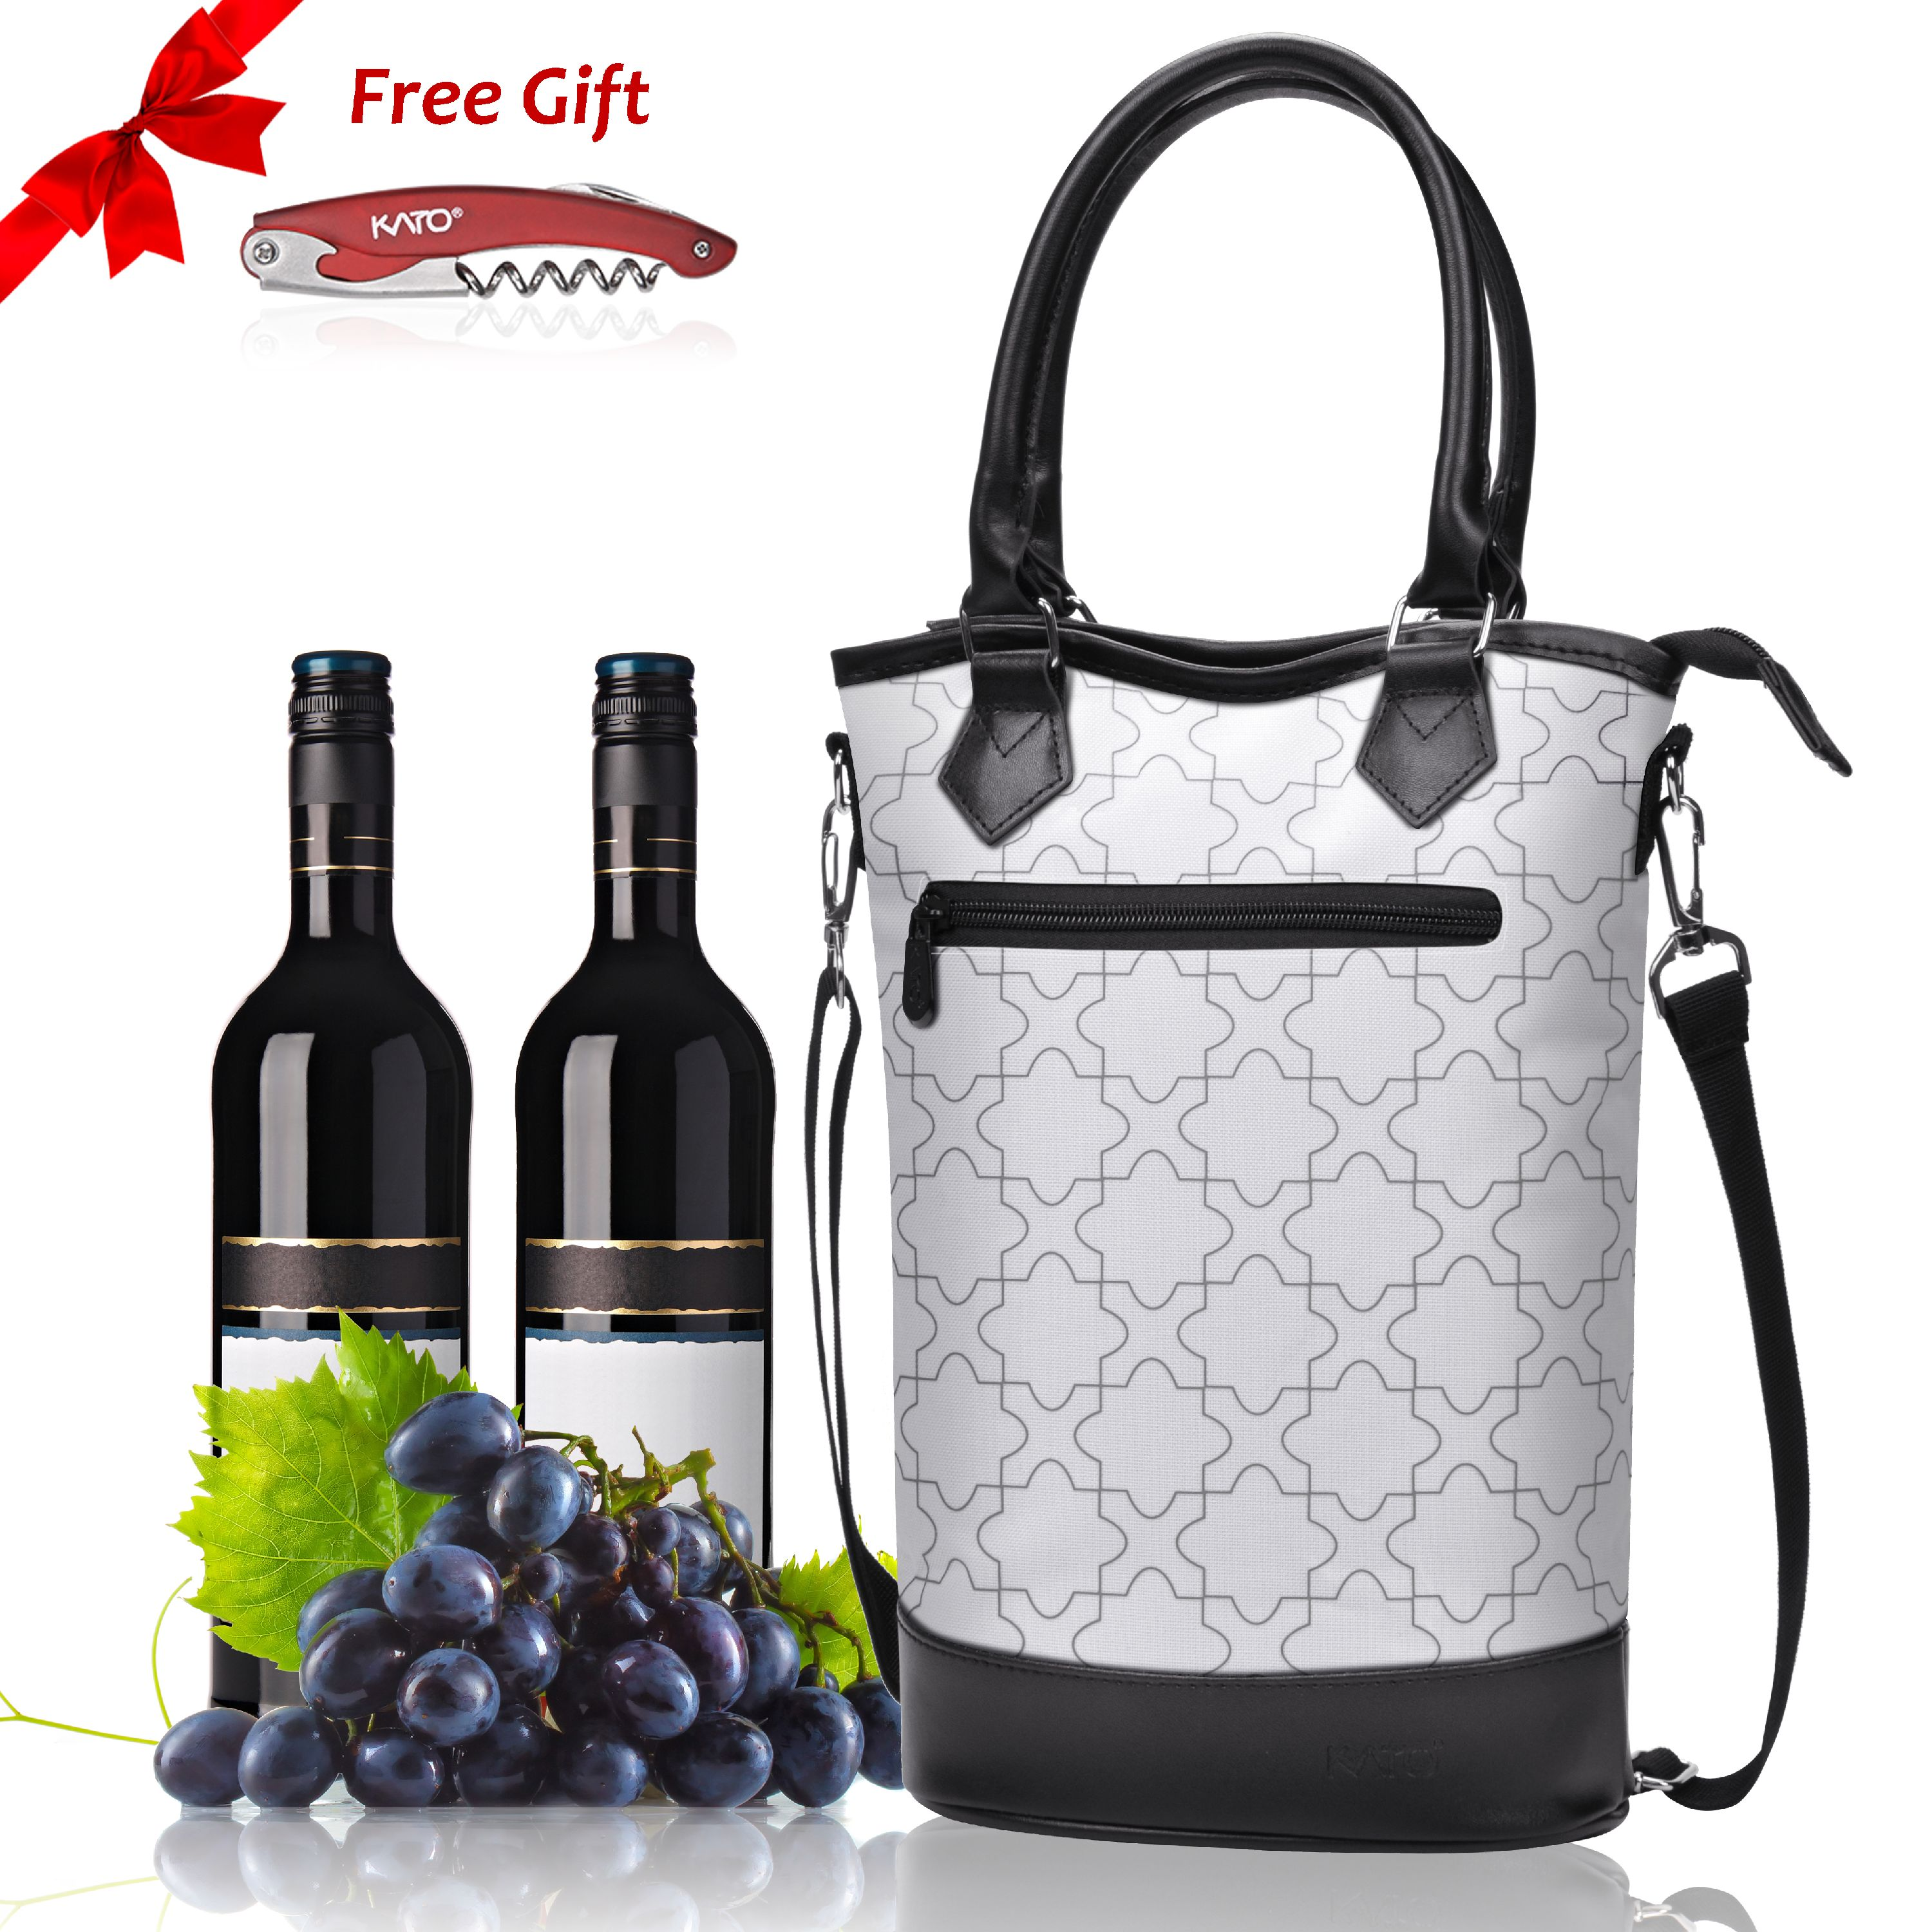 Kato Insulated Wine Tote Bag - Travel Padded 2 Bottle Wine/ Champagne Cooler Carrier with Handle and Shoulder Strap + Free Corkscrew, Great Wine Lover Gift